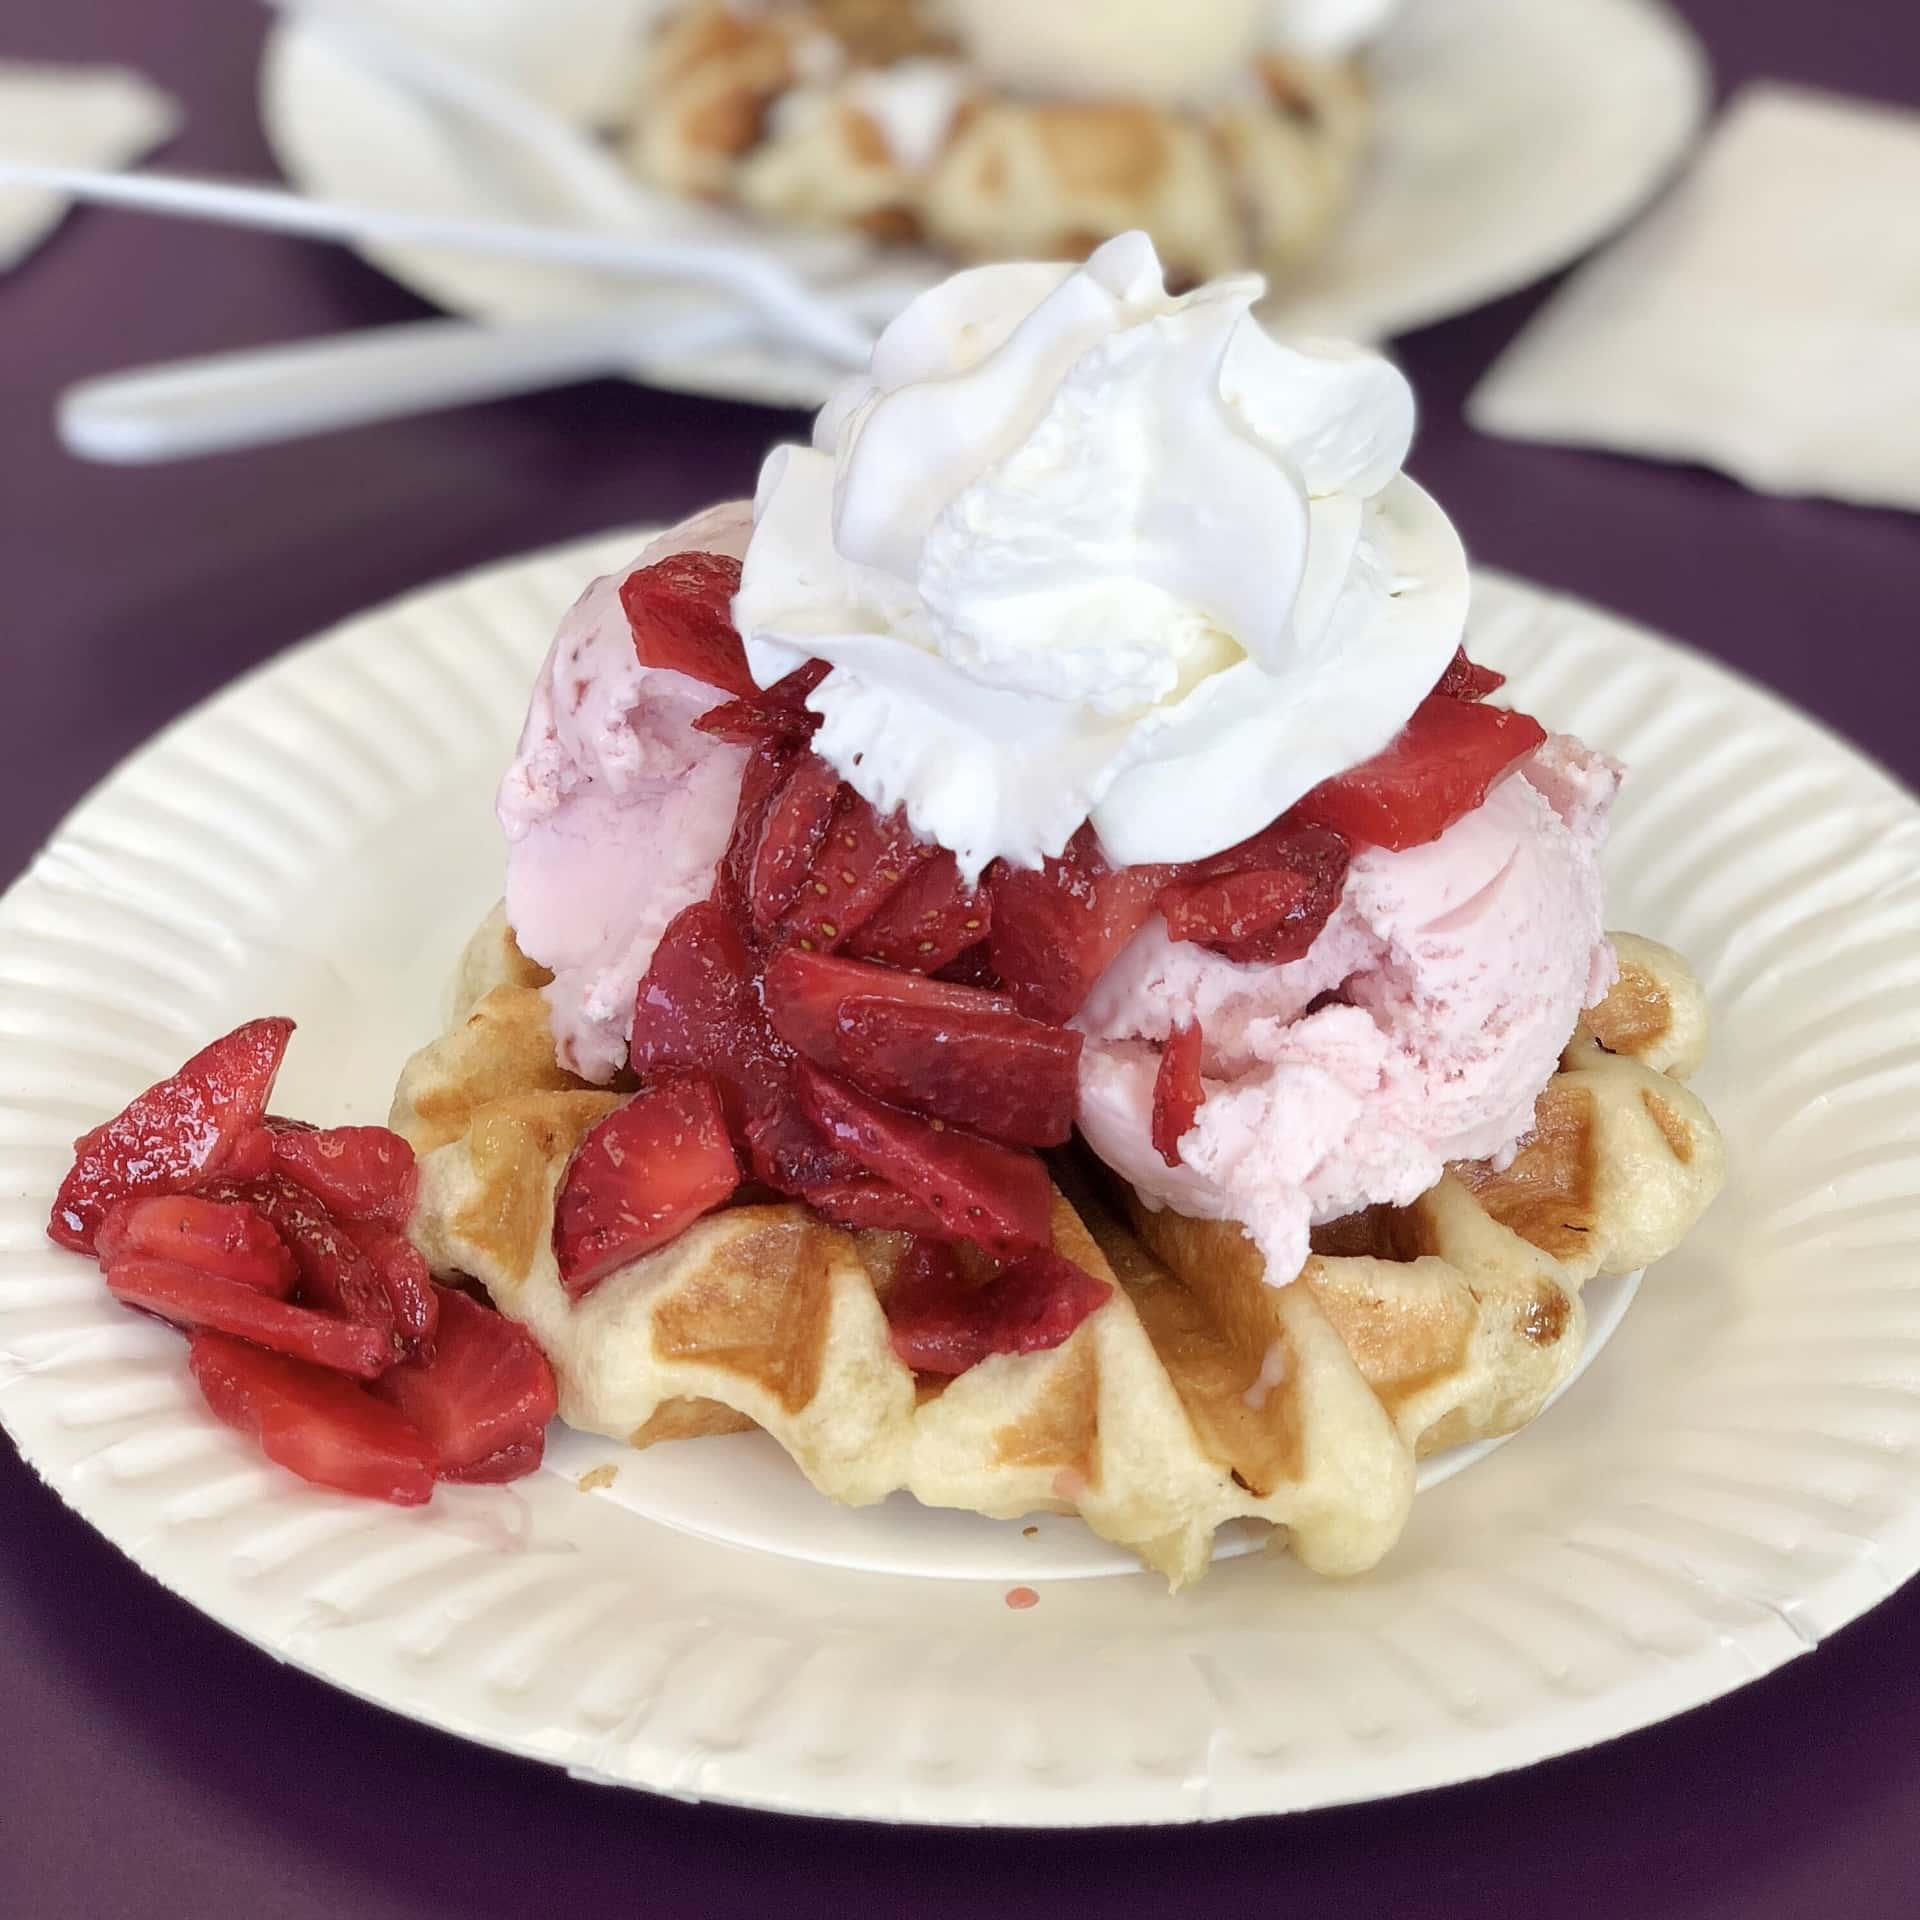 Waffles & Cream Cafe, Parsippany NJ, Serves Savory and Sweet Belgian Waffles